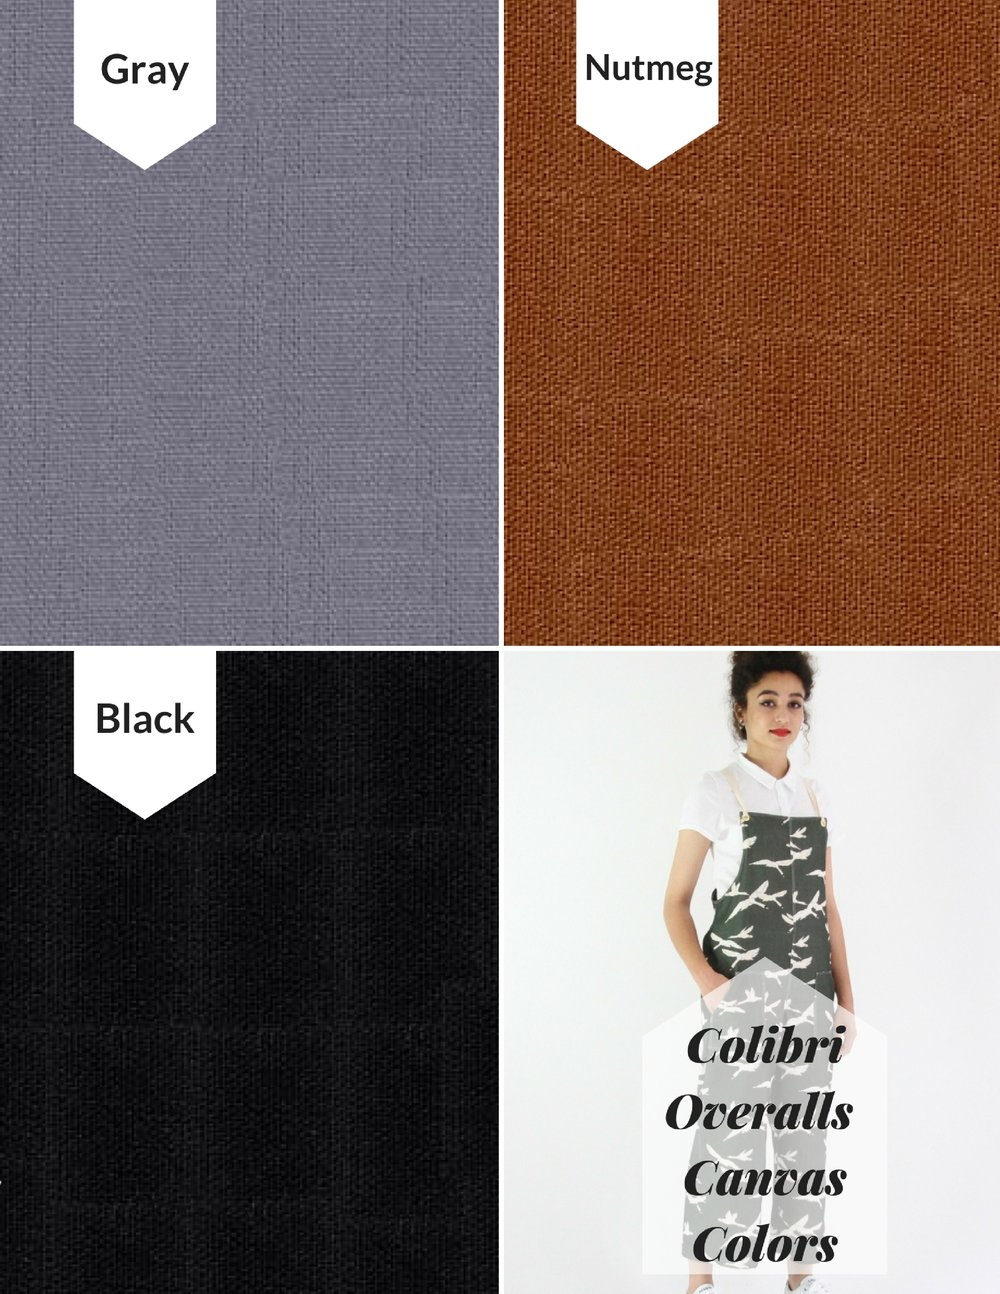 Colibri Overalls Color Choices